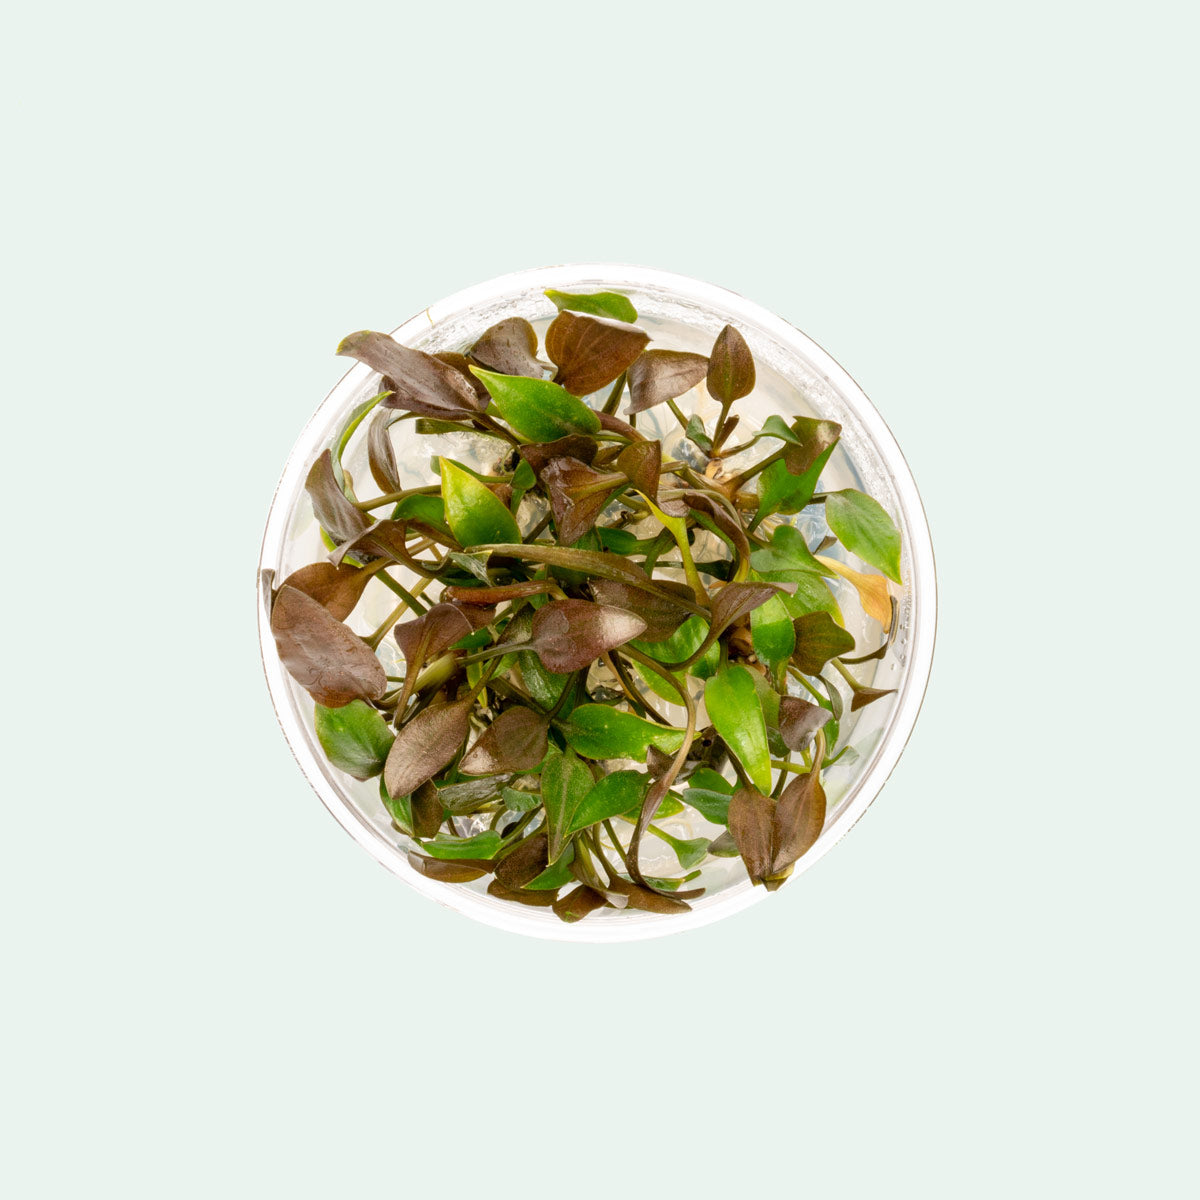 Shop Cryptocoryne Undulatus Tissue Culture Aquatic Plants - Glass Aqua